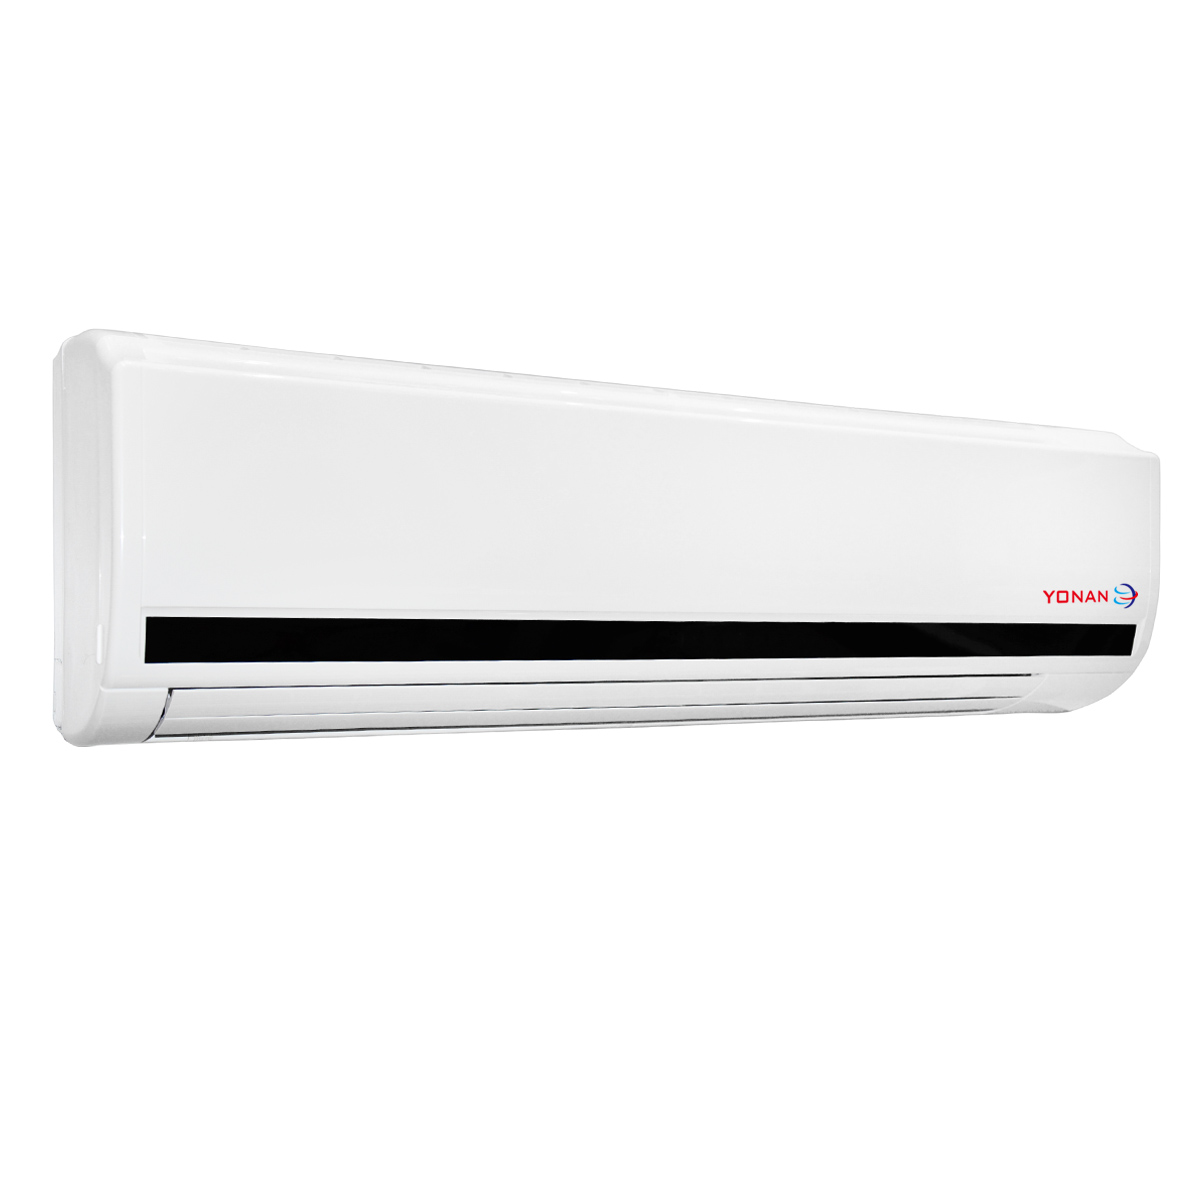 AIR CONDITIONER  Split Wall Air Conditioner 12 000 BTU